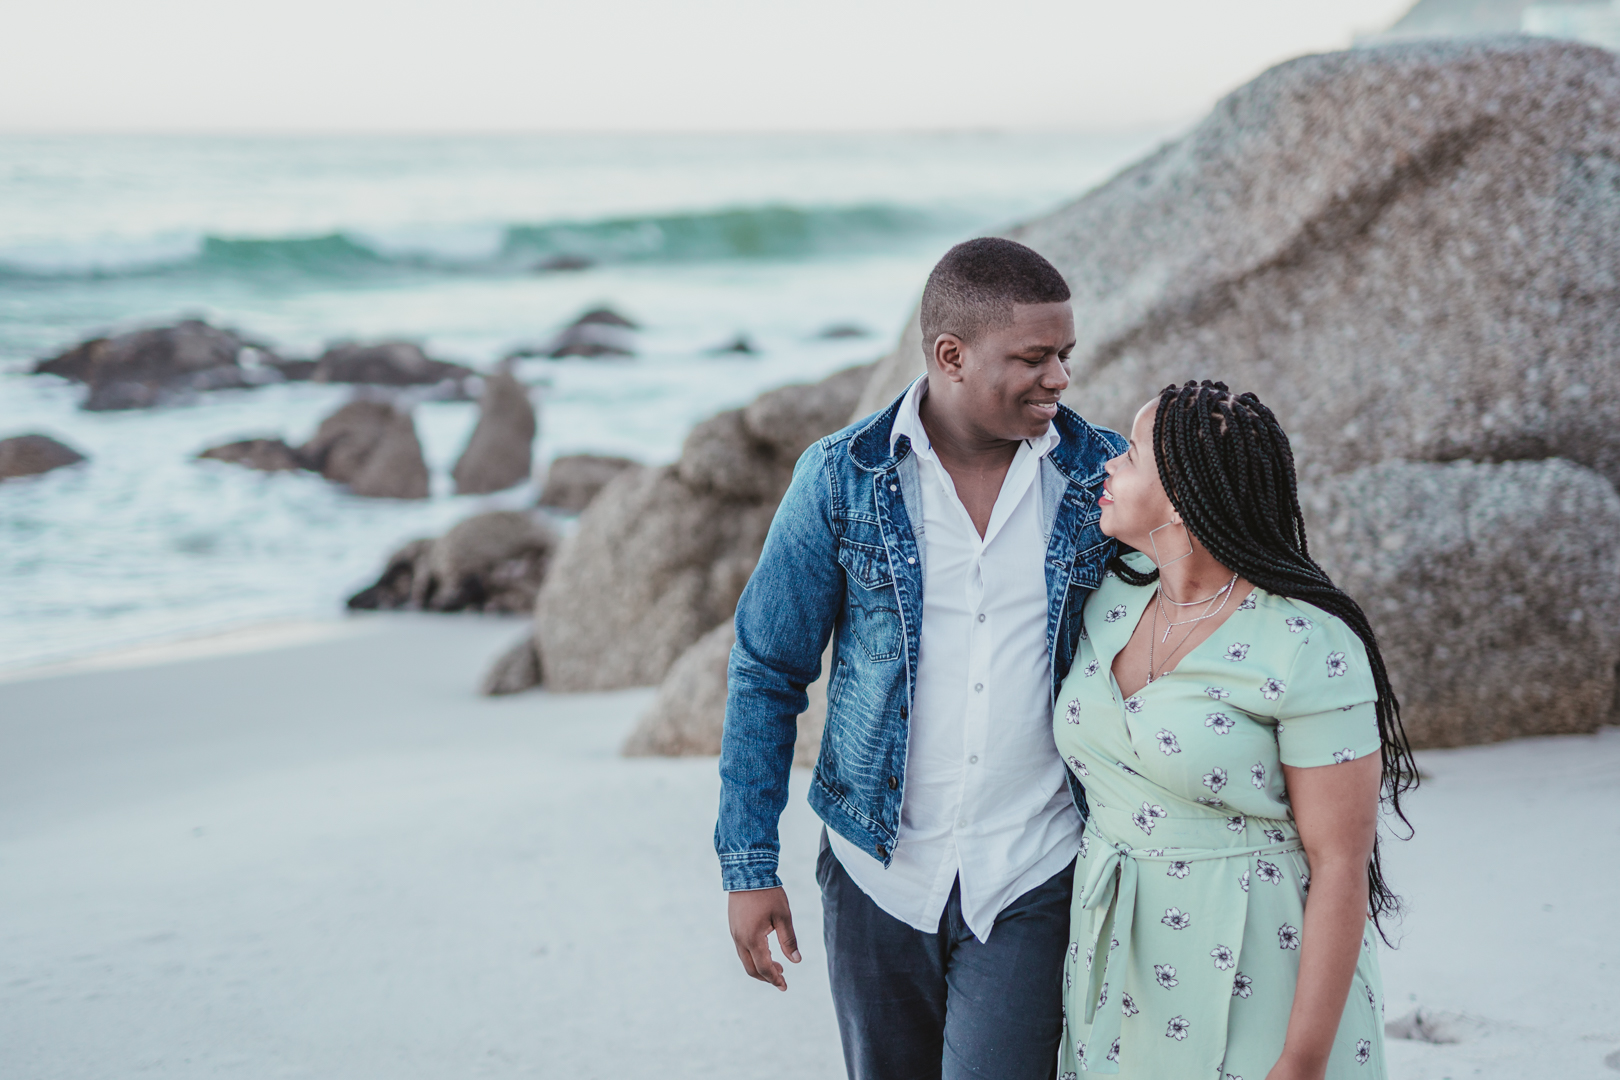 Couples Photos - Cape Town Beach session by Cape Image Co. _Small-file-15.jpg